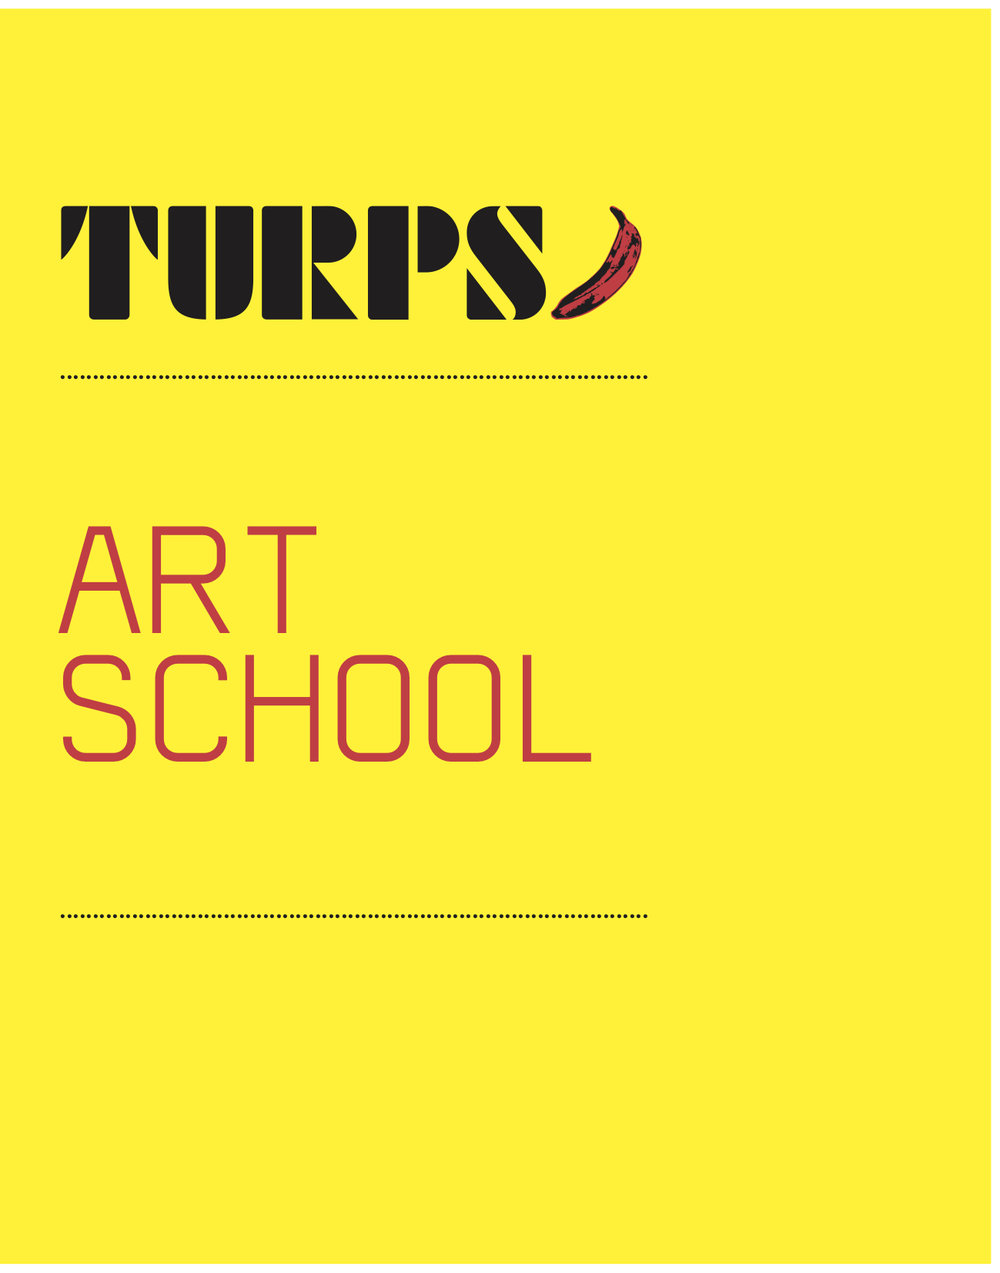 2 TURPS ART SCHOOL RED.jpg